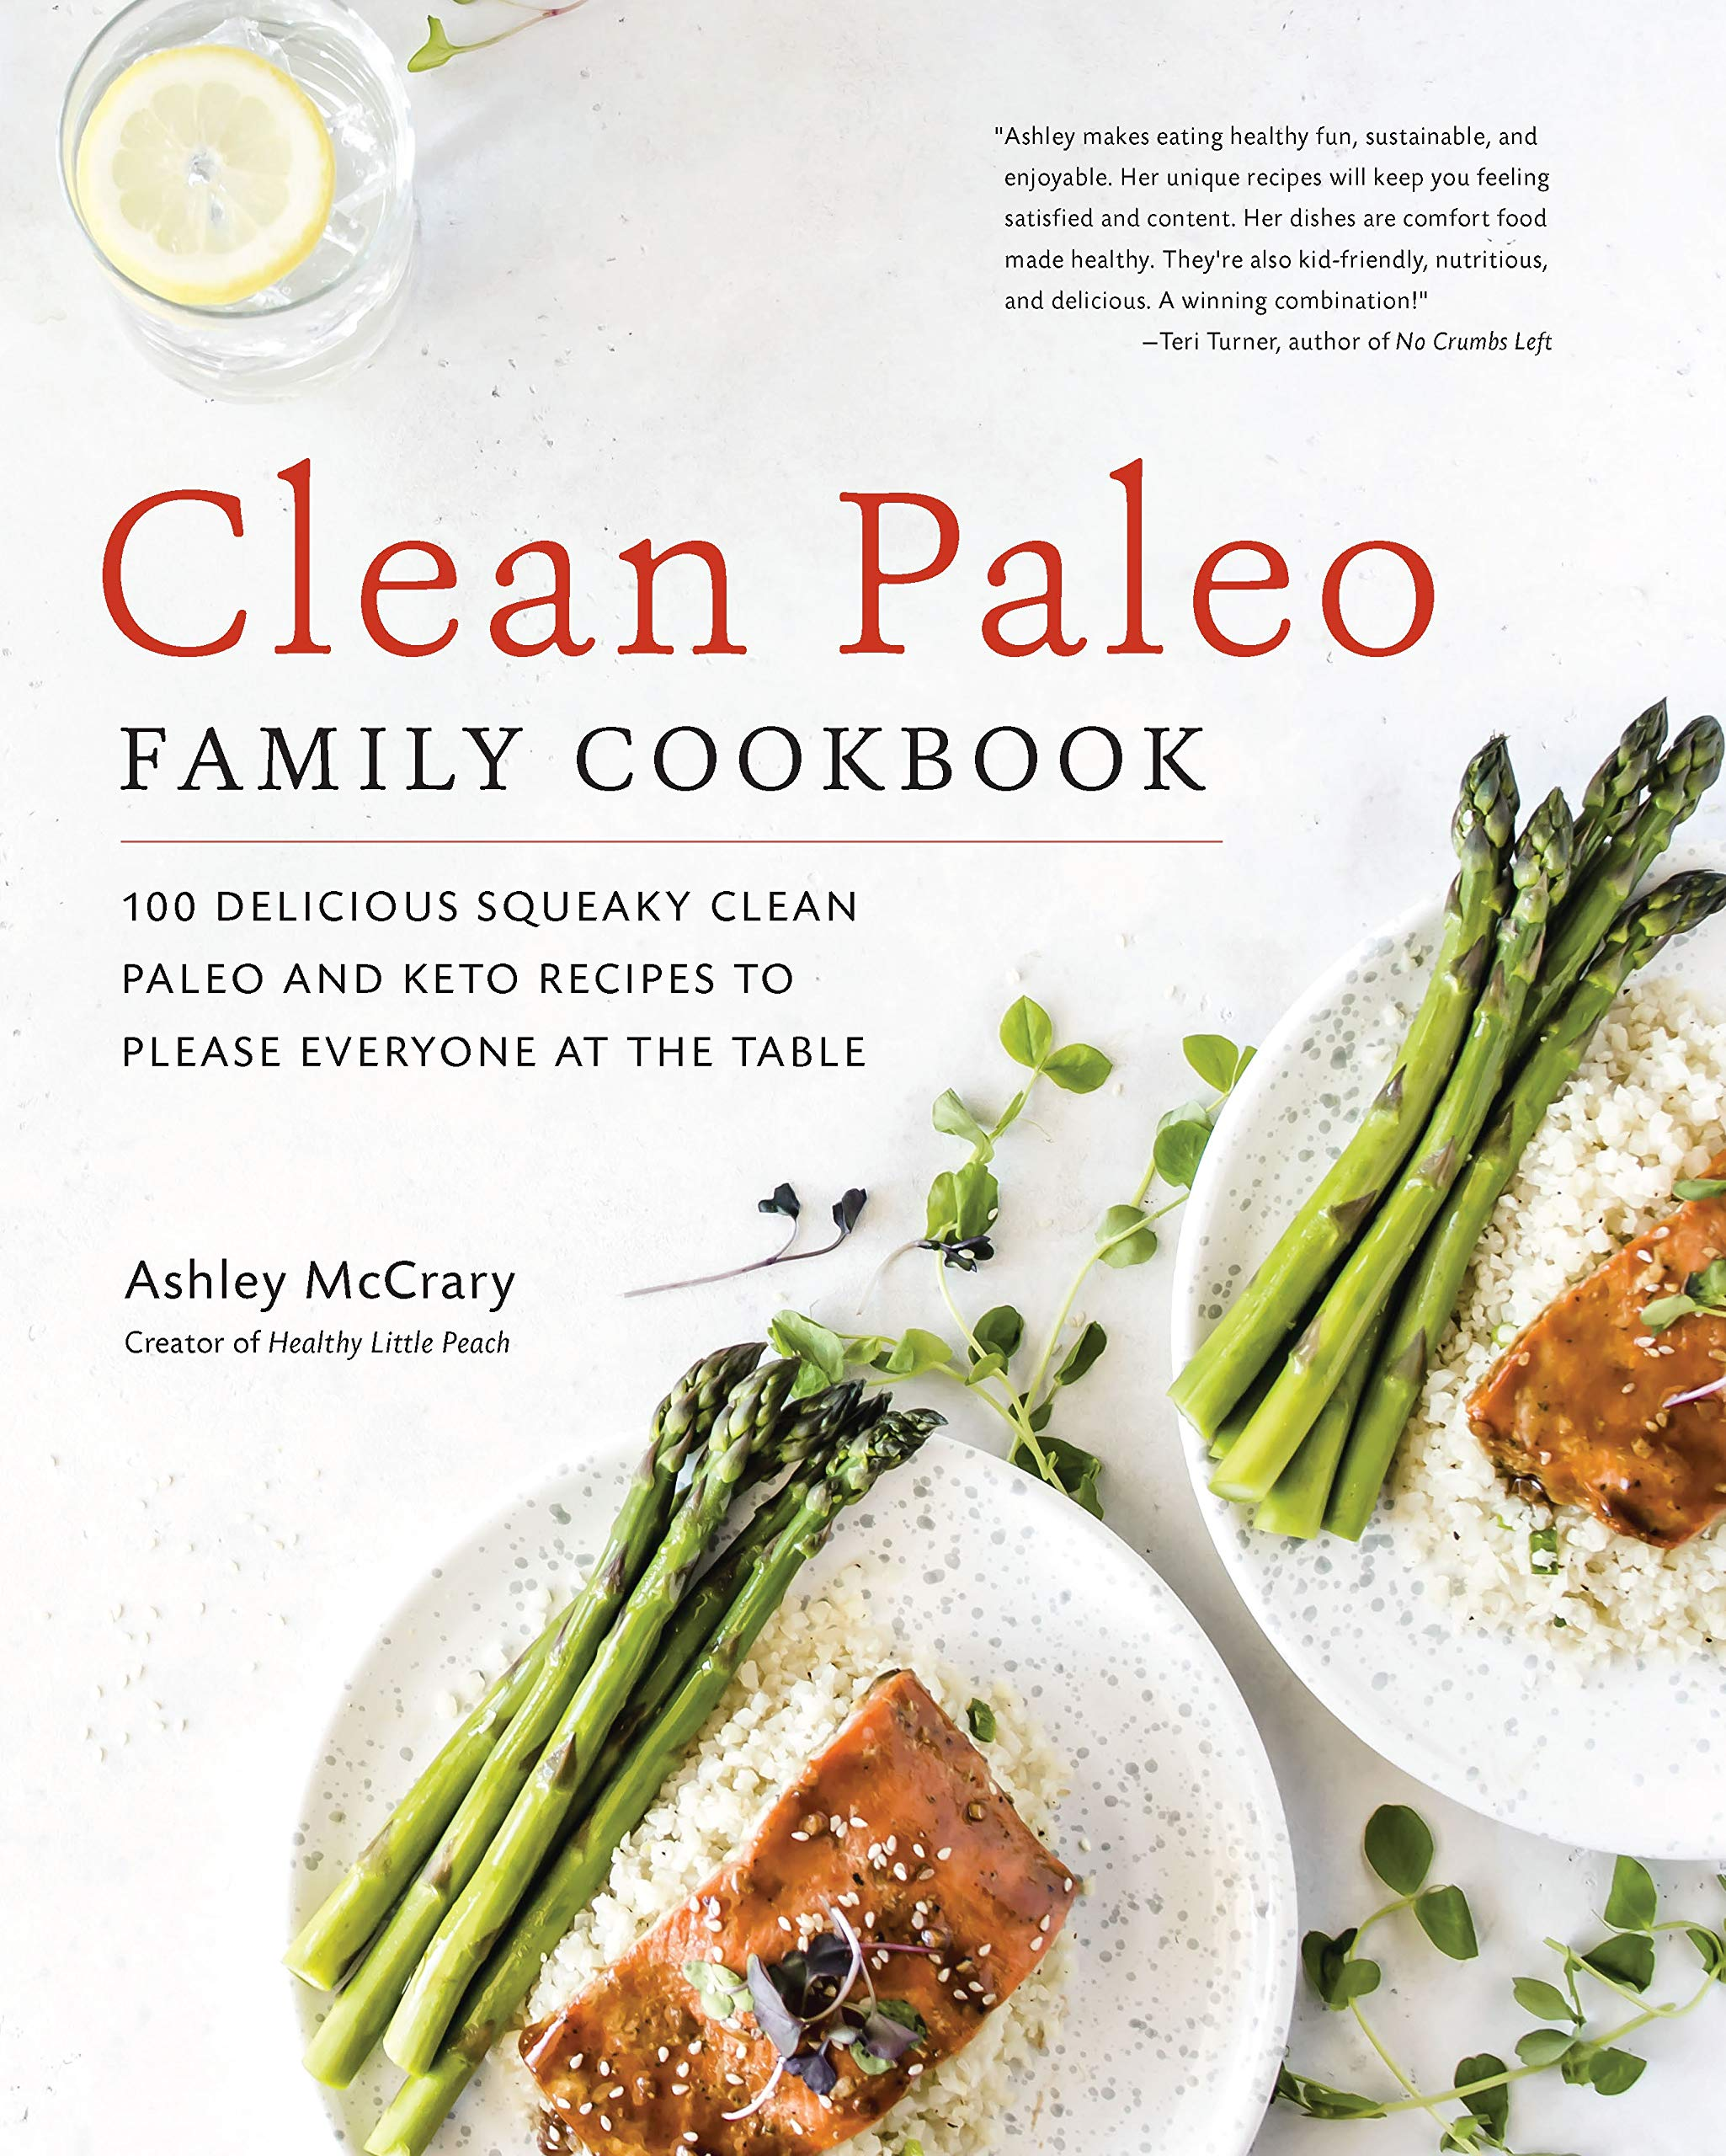 Clean Paleo Family Cookbook: 100 Delicious Squeaky Clean Paleo And Keto Recipes To Please Everyone At The Table